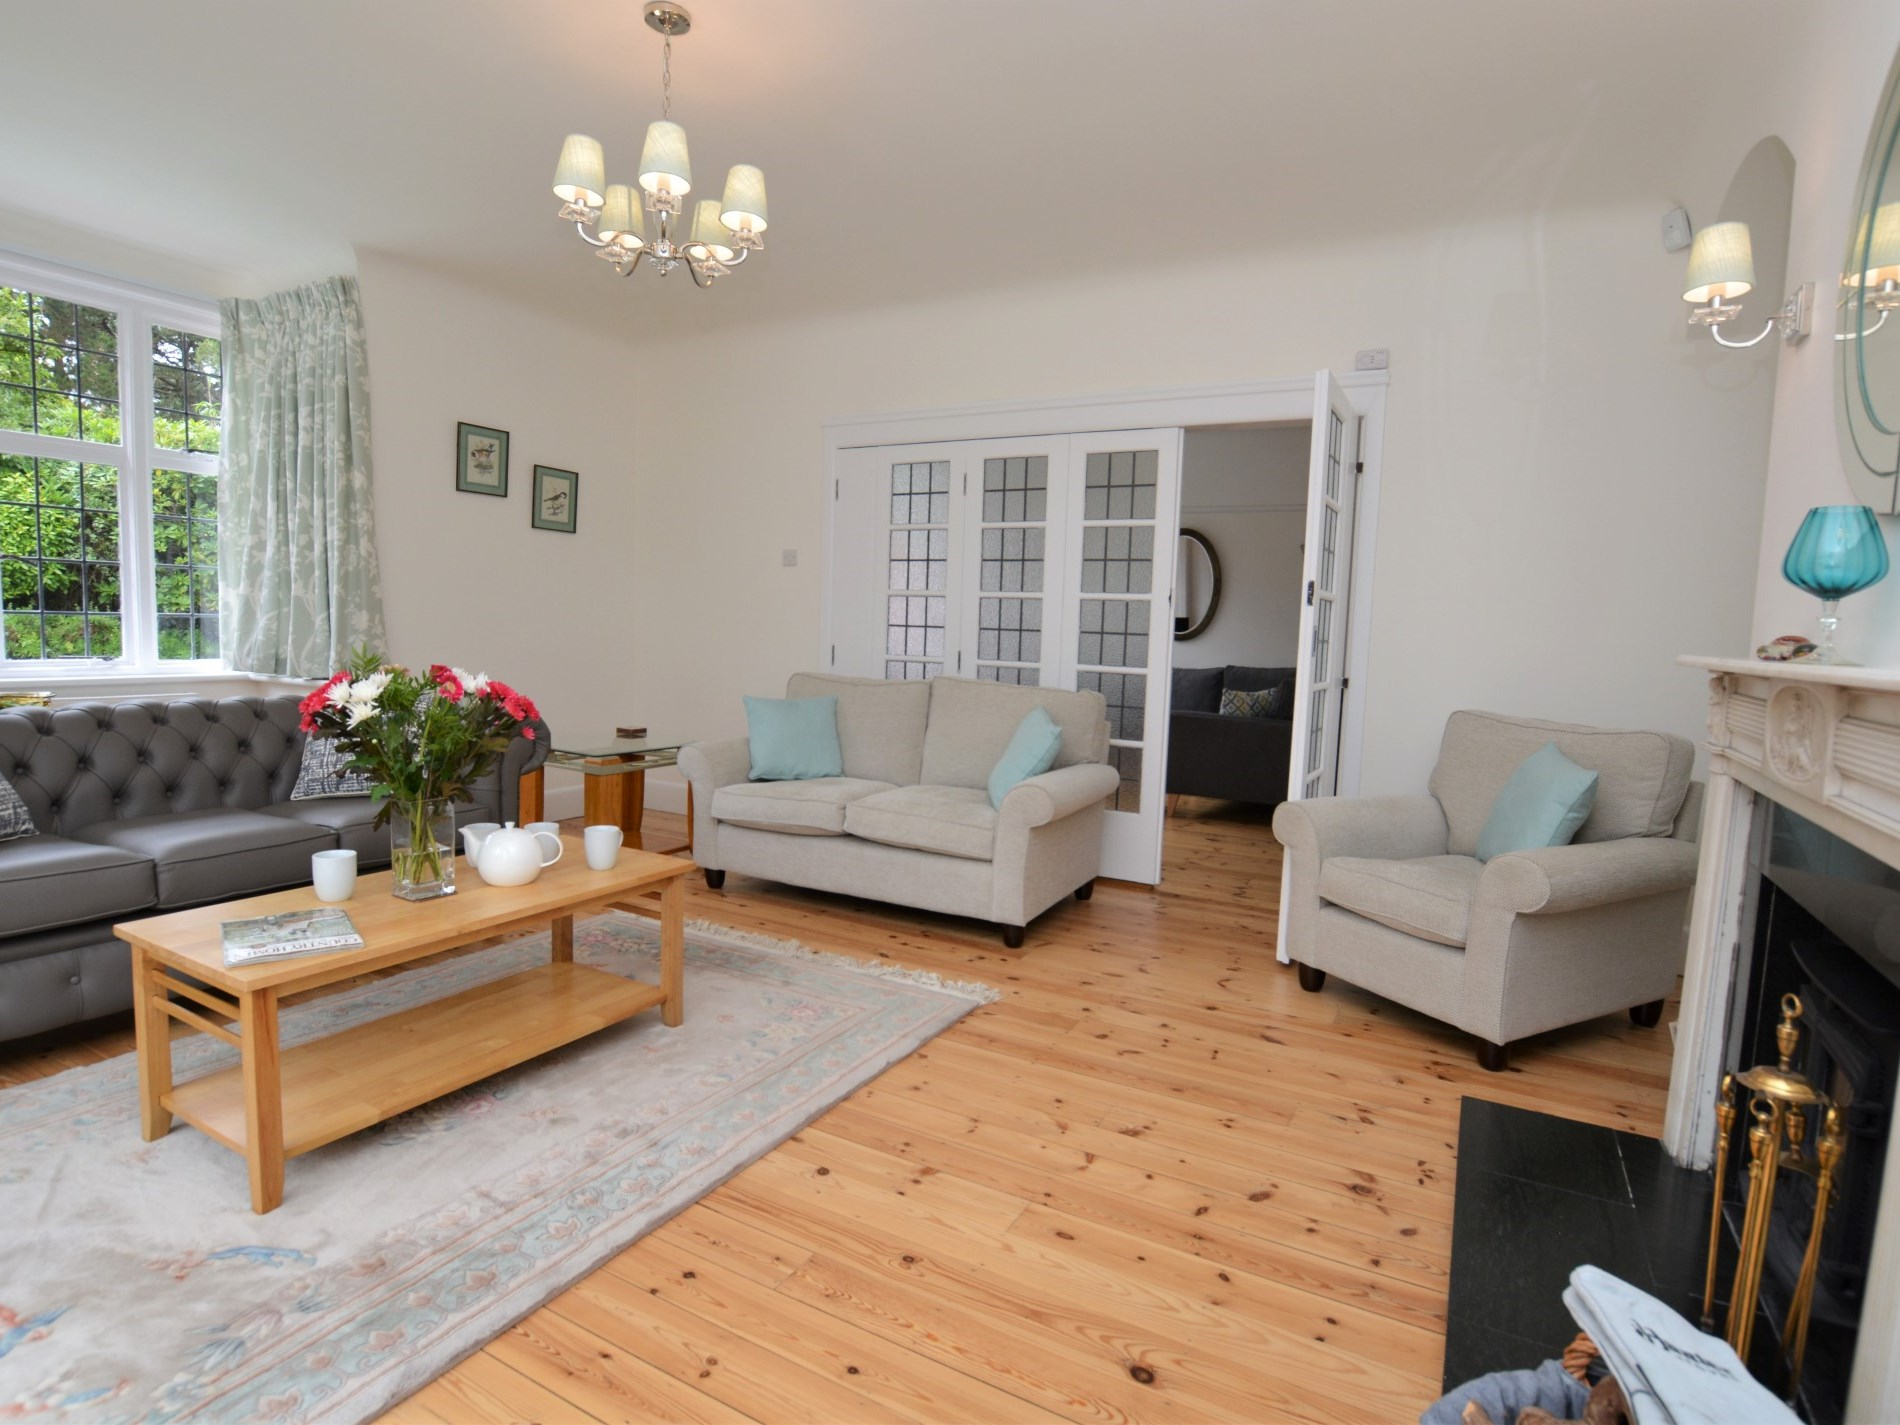 Spacious lounge with doors leading to the snug and hallway